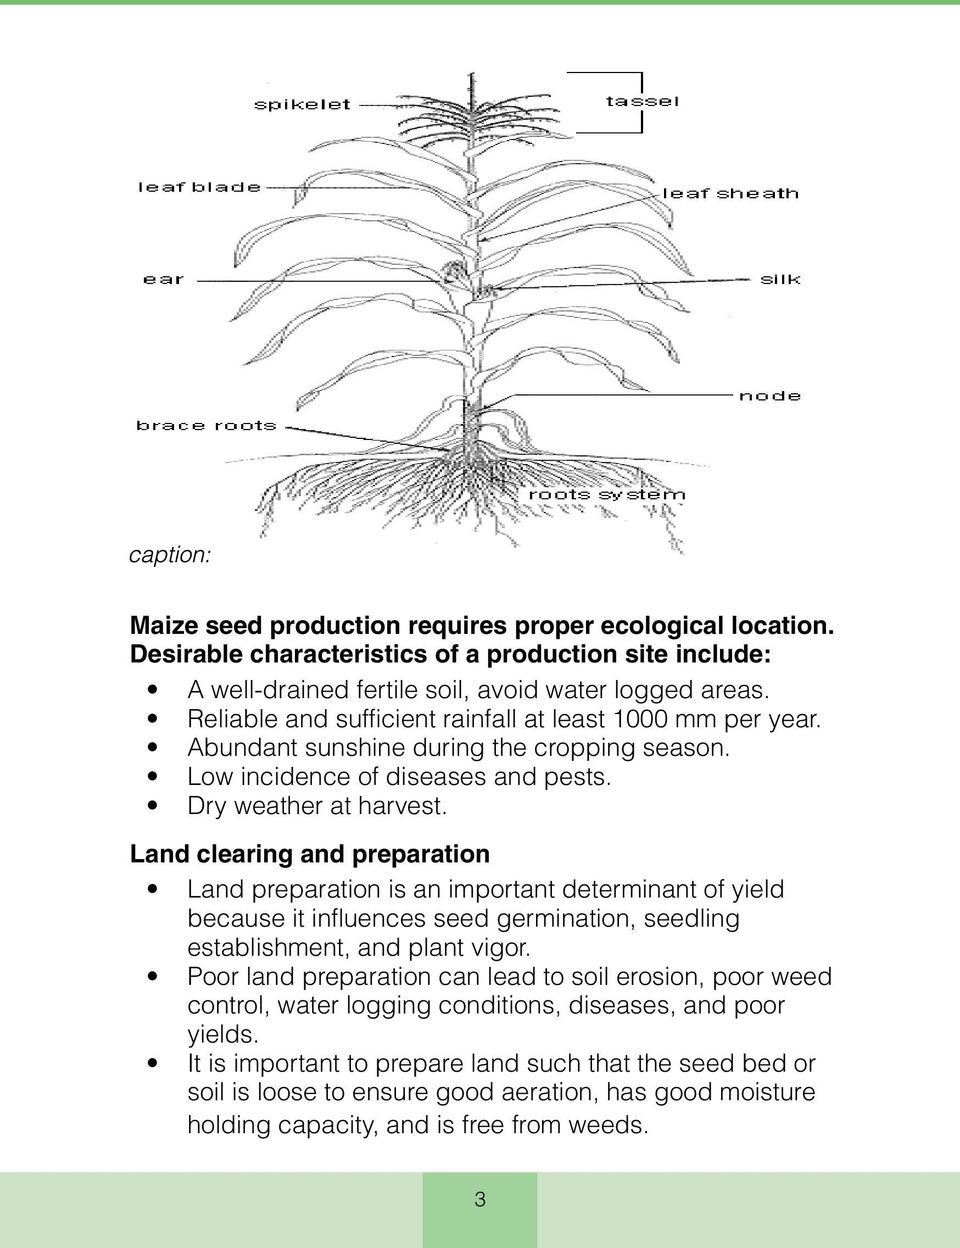 Land clearing and preparation Land preparation is an important determinant of yield because it influences seed germination, seedling establishment, and plant vigor.